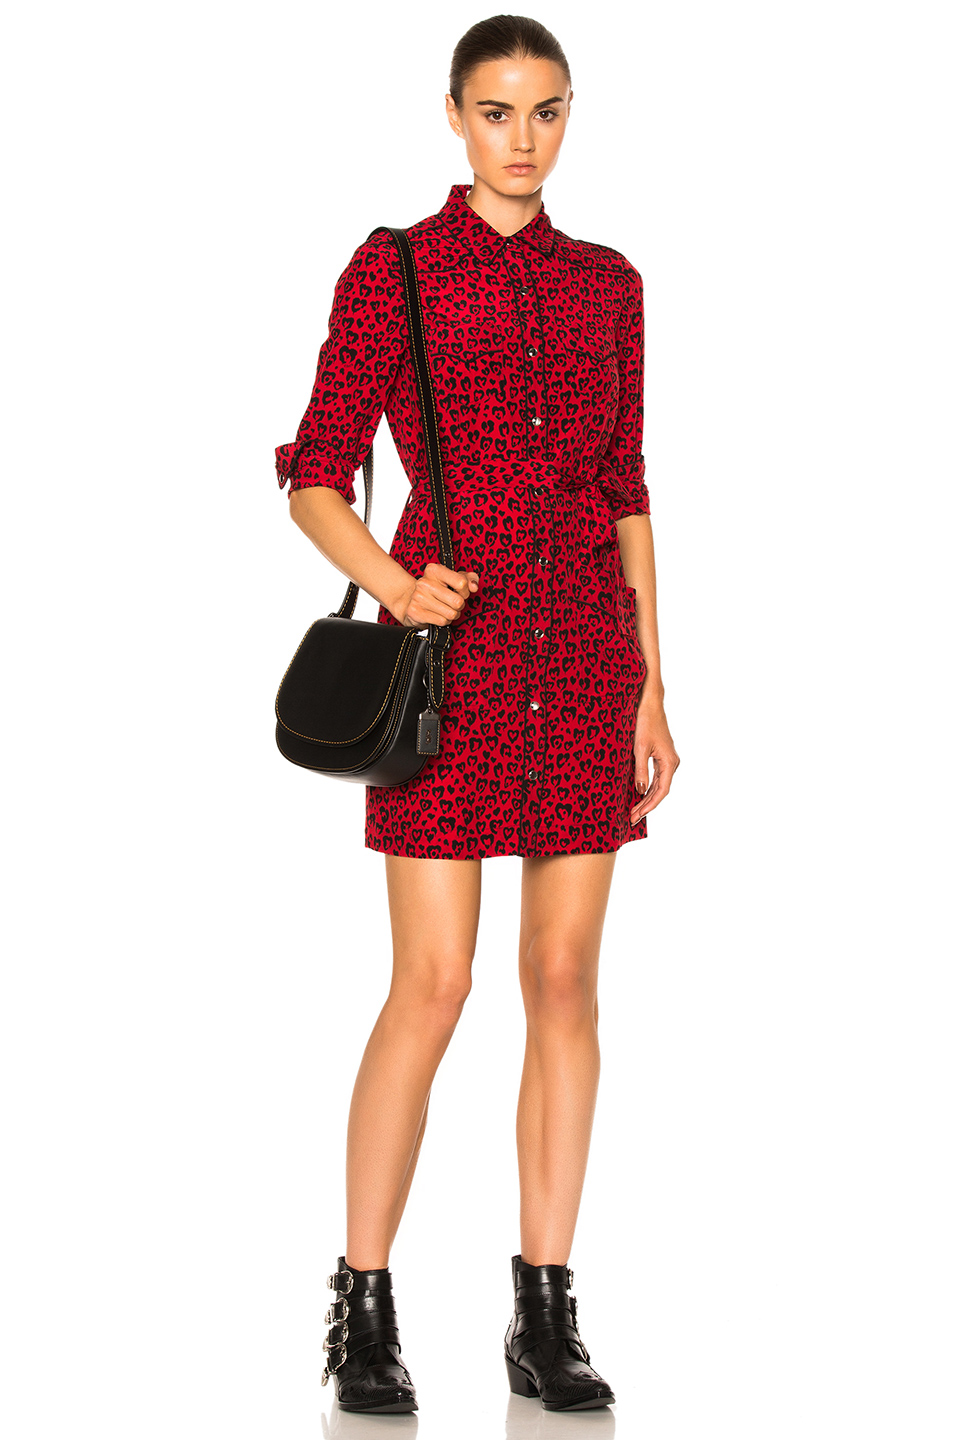 Coach 1941 Piped Shirt Dress in Animal Print,Red